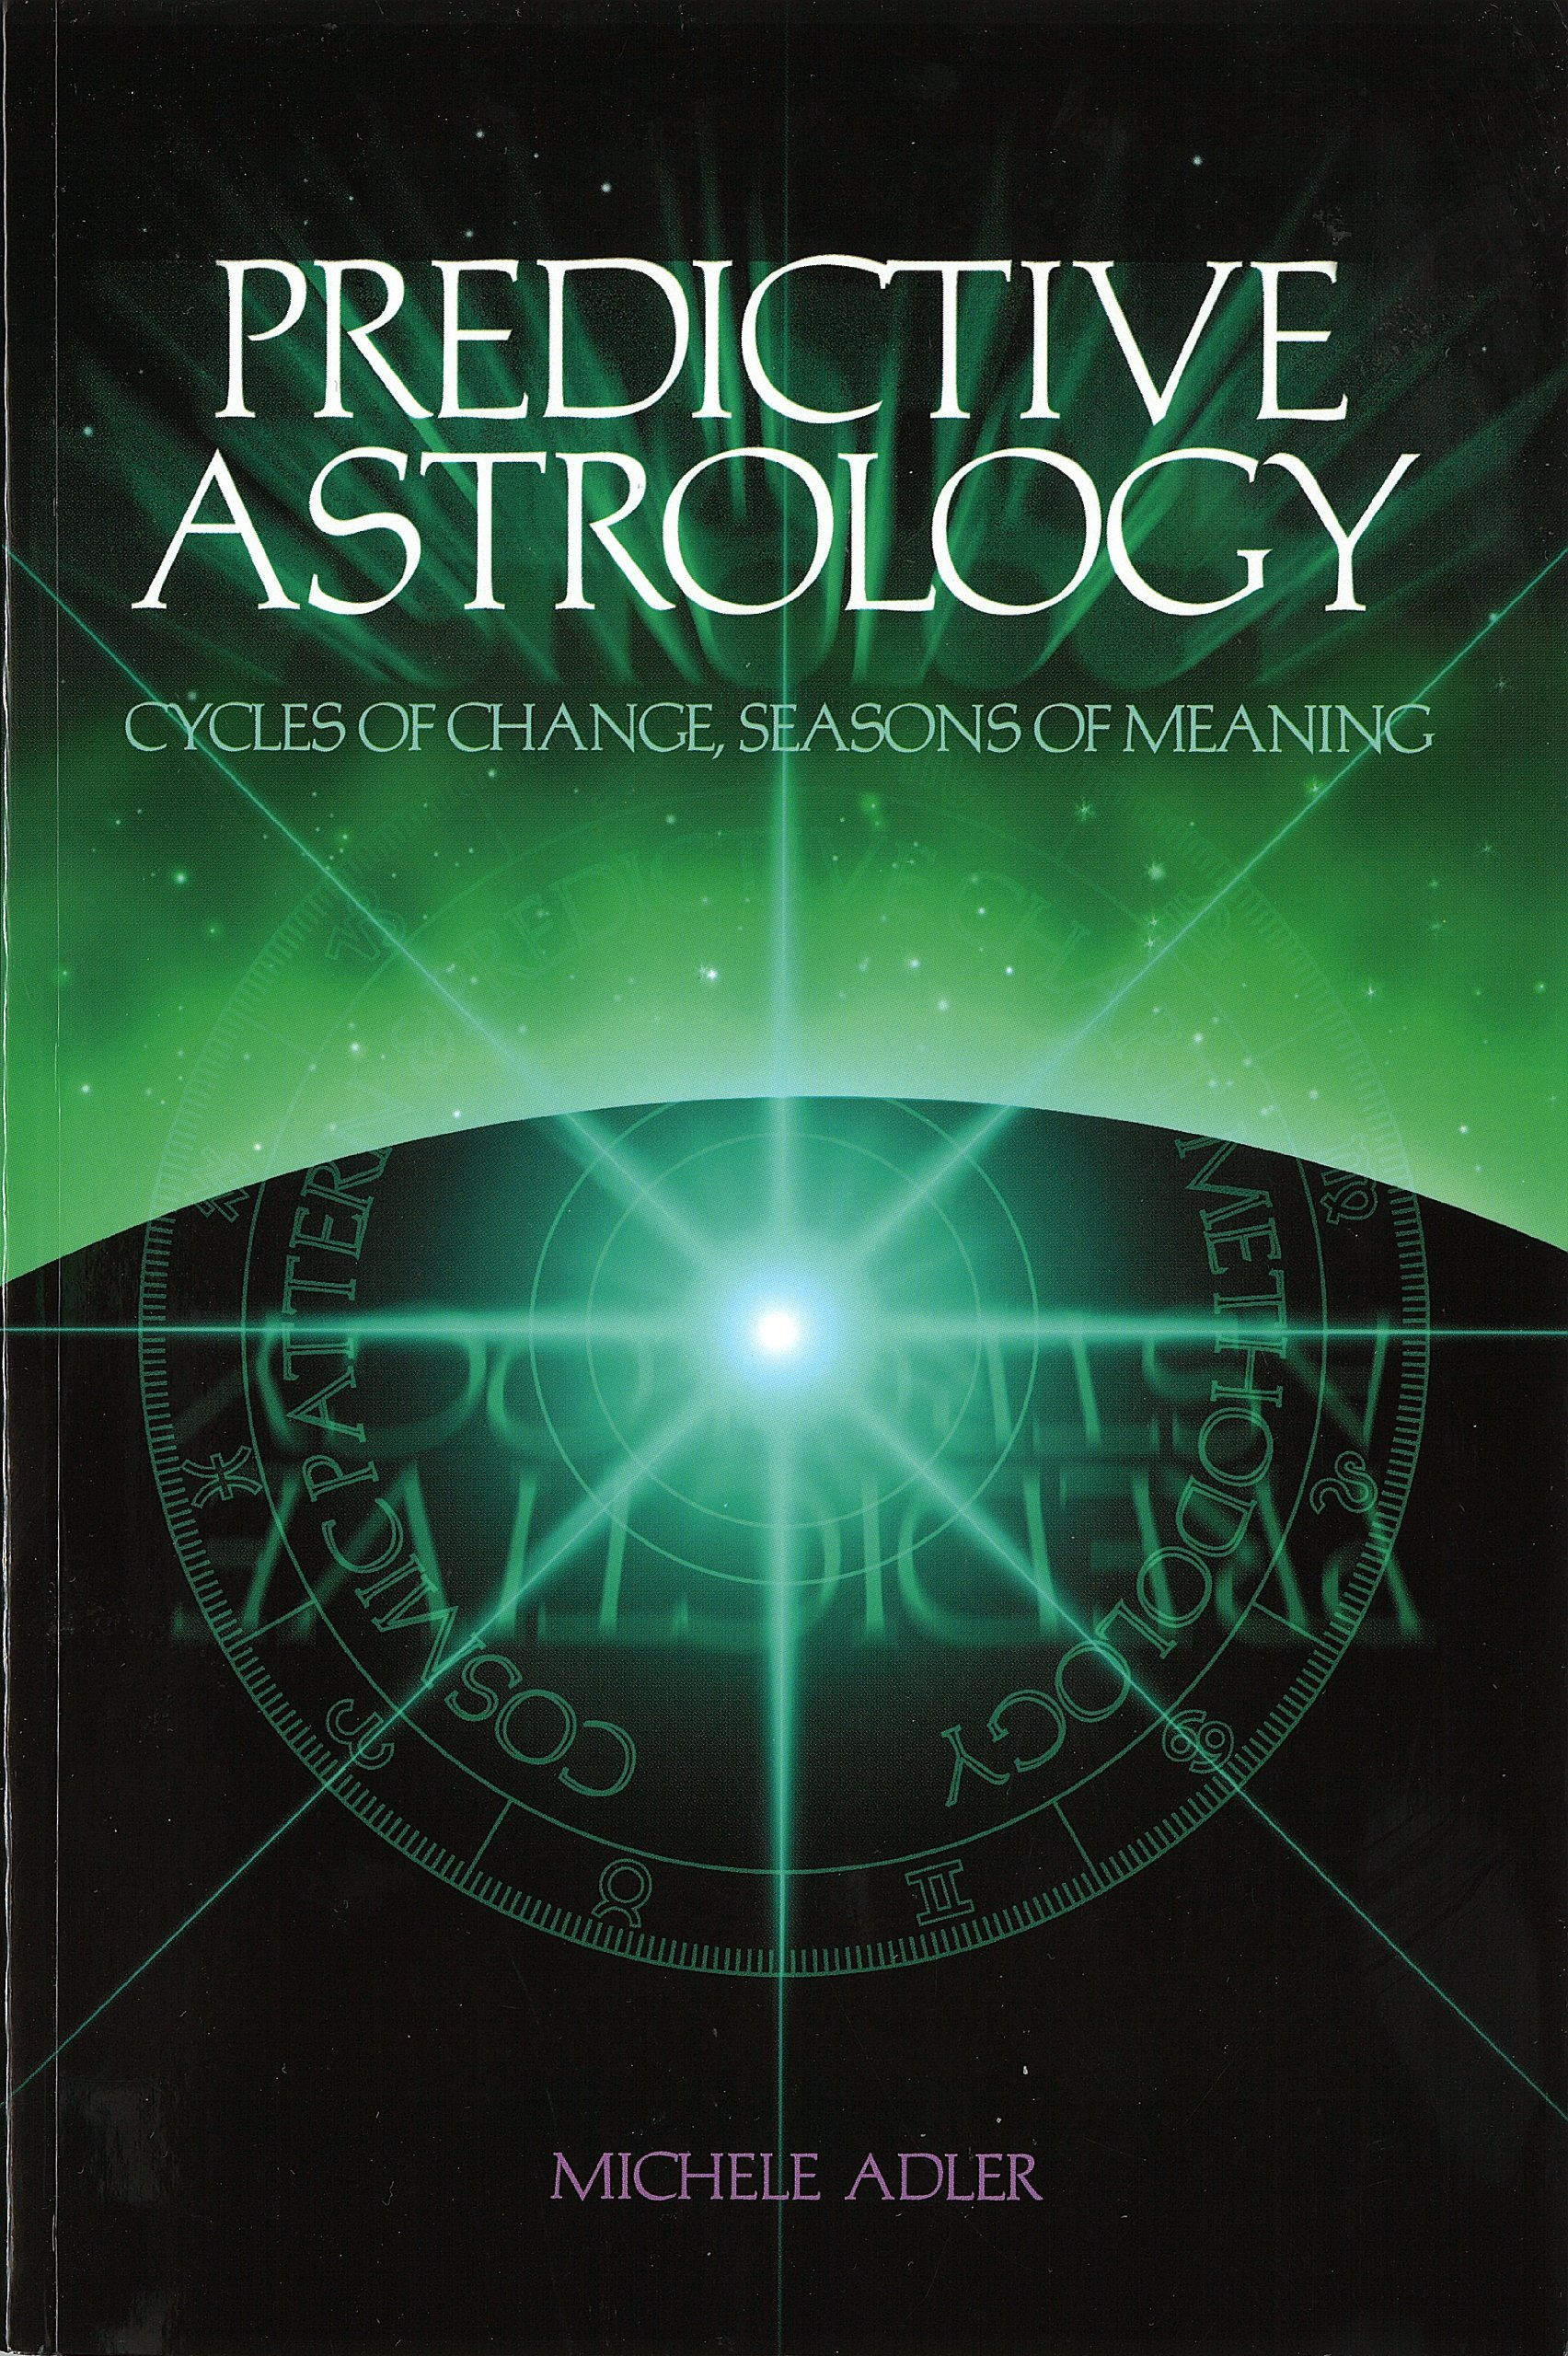 Predictive astrology cycles of change seasons of meaning predictive astrology cycles of change seasons of meaning michele adler 9780976674108 amazon books nvjuhfo Gallery